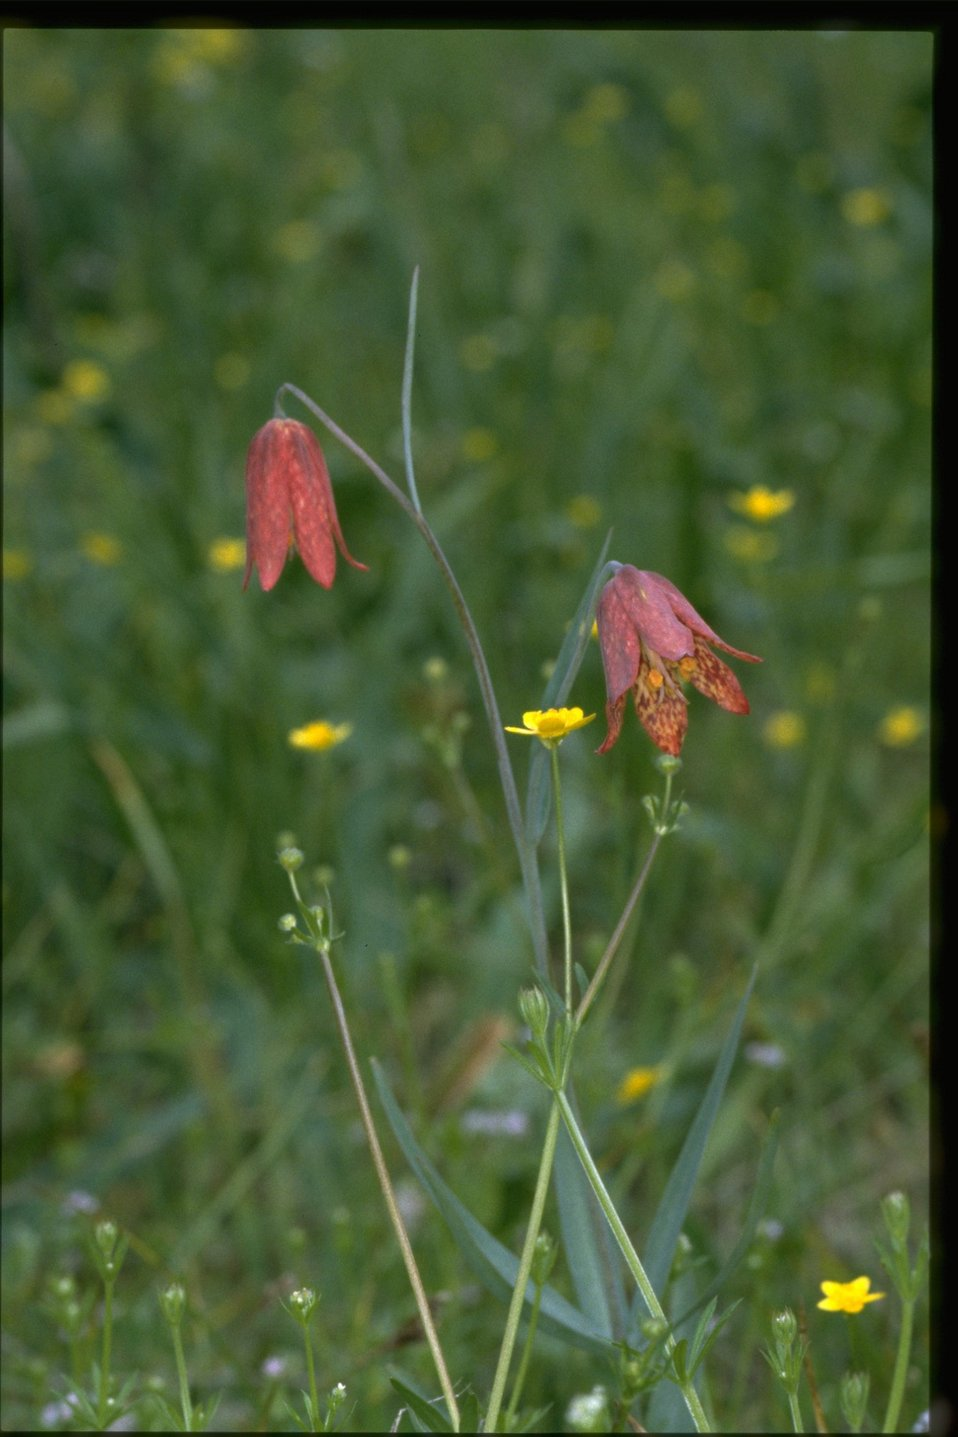 Medium shot of Gentner's Fritillary, Fritillaria gentneri.